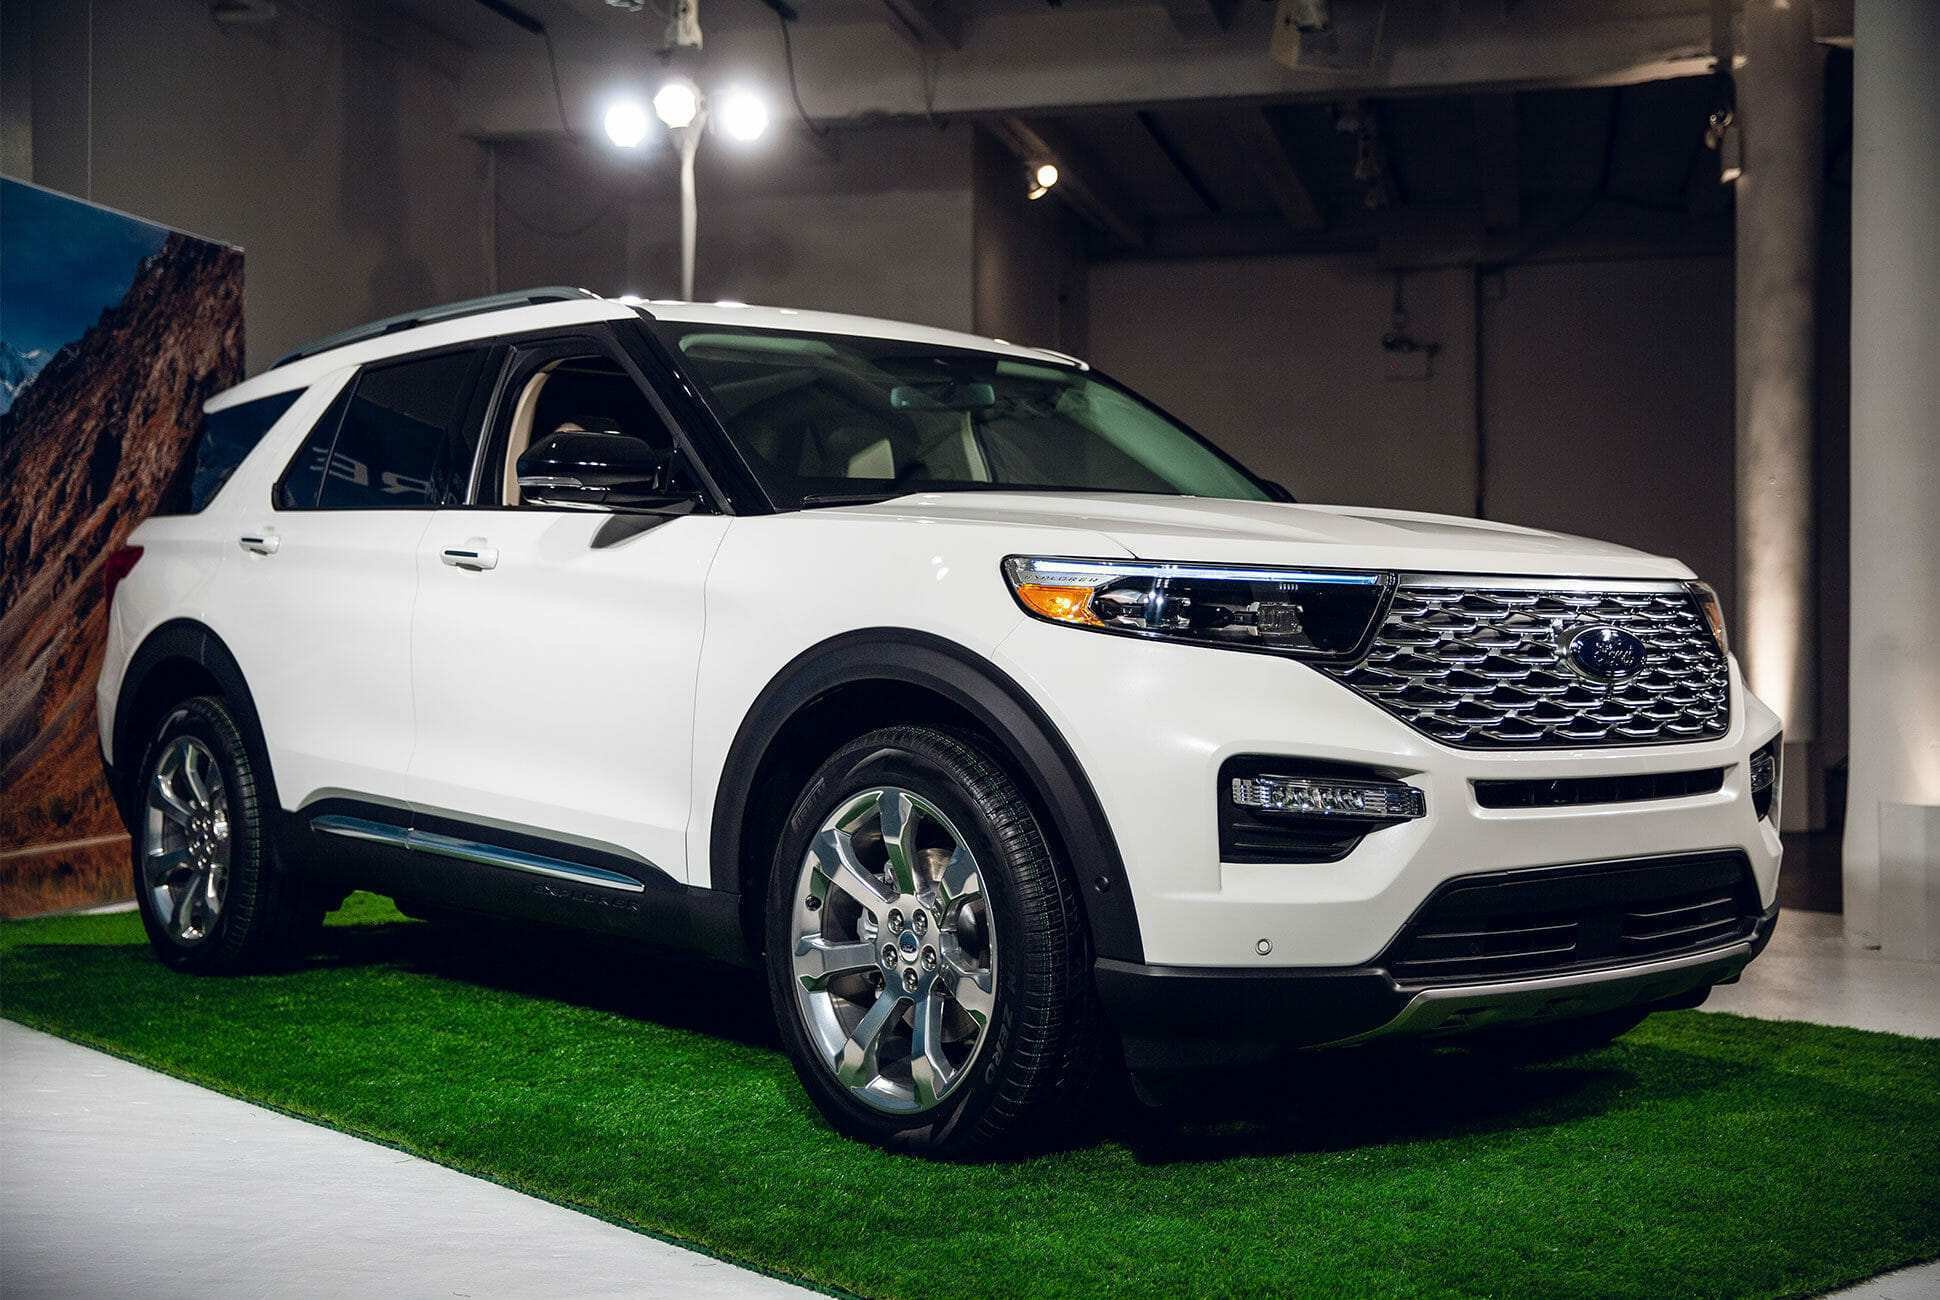 16 New 2020 Ford Explorer Design Research New for 2020 Ford Explorer Design